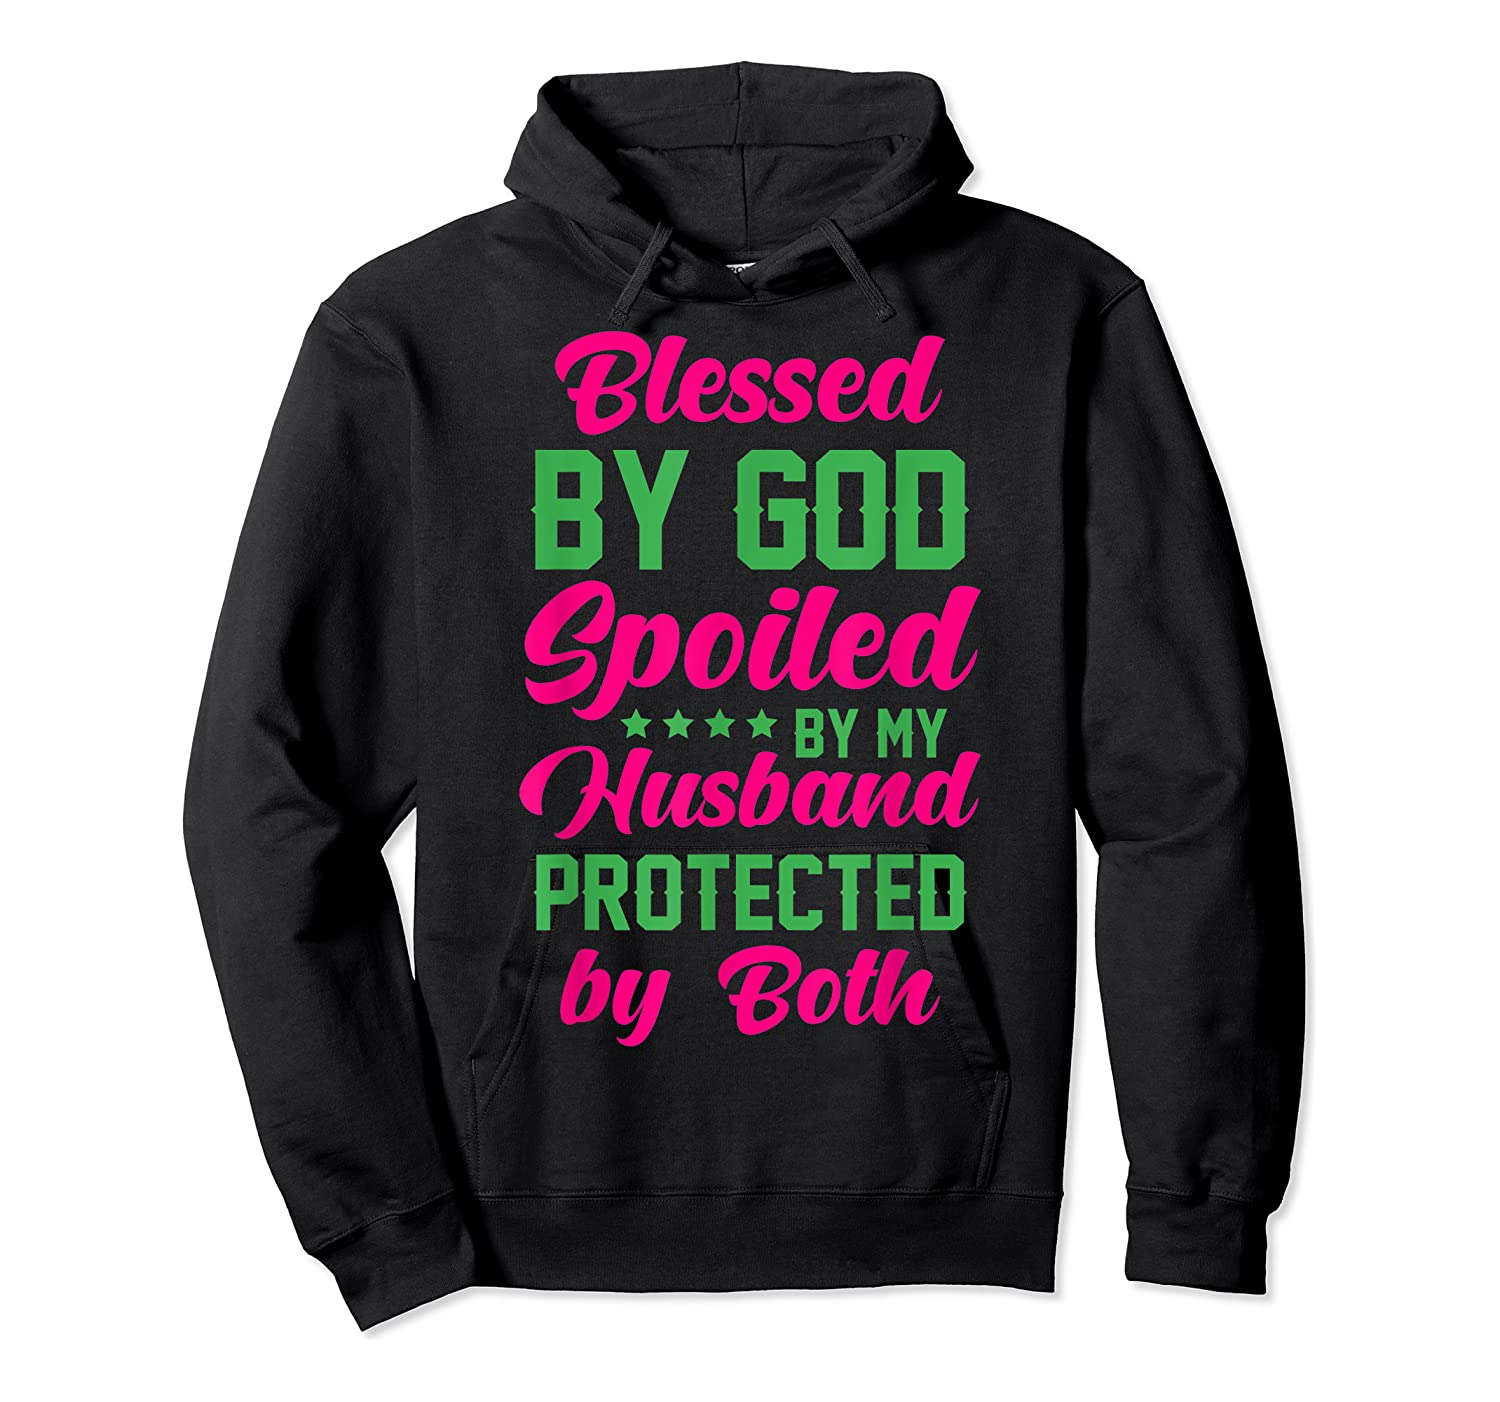 Blessed By God Spoiled By My Husband Protected By Both Shirts Unisex Pullover Hoodie